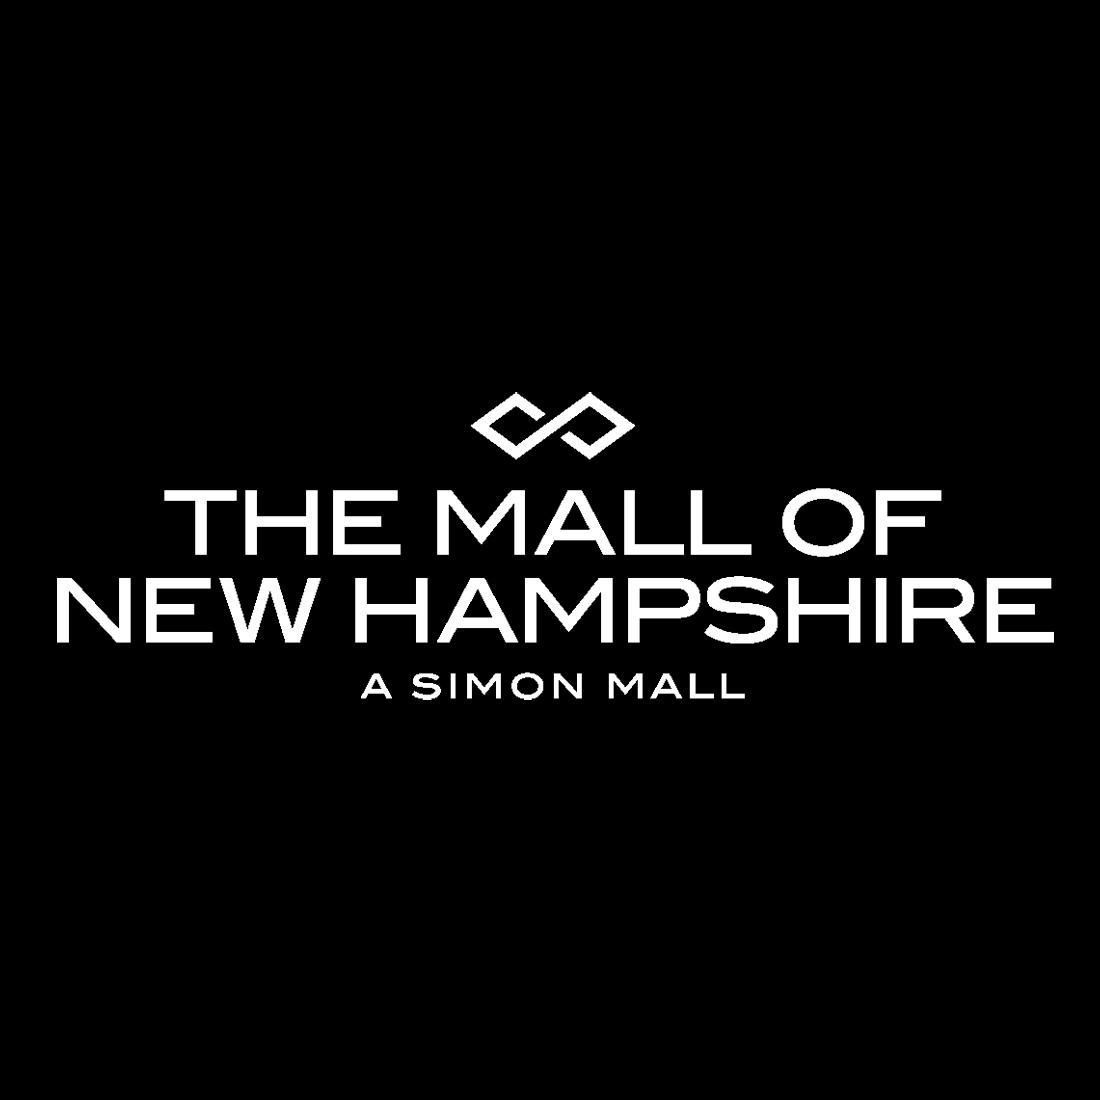 the mall of new hampshire in manchester nh 03103